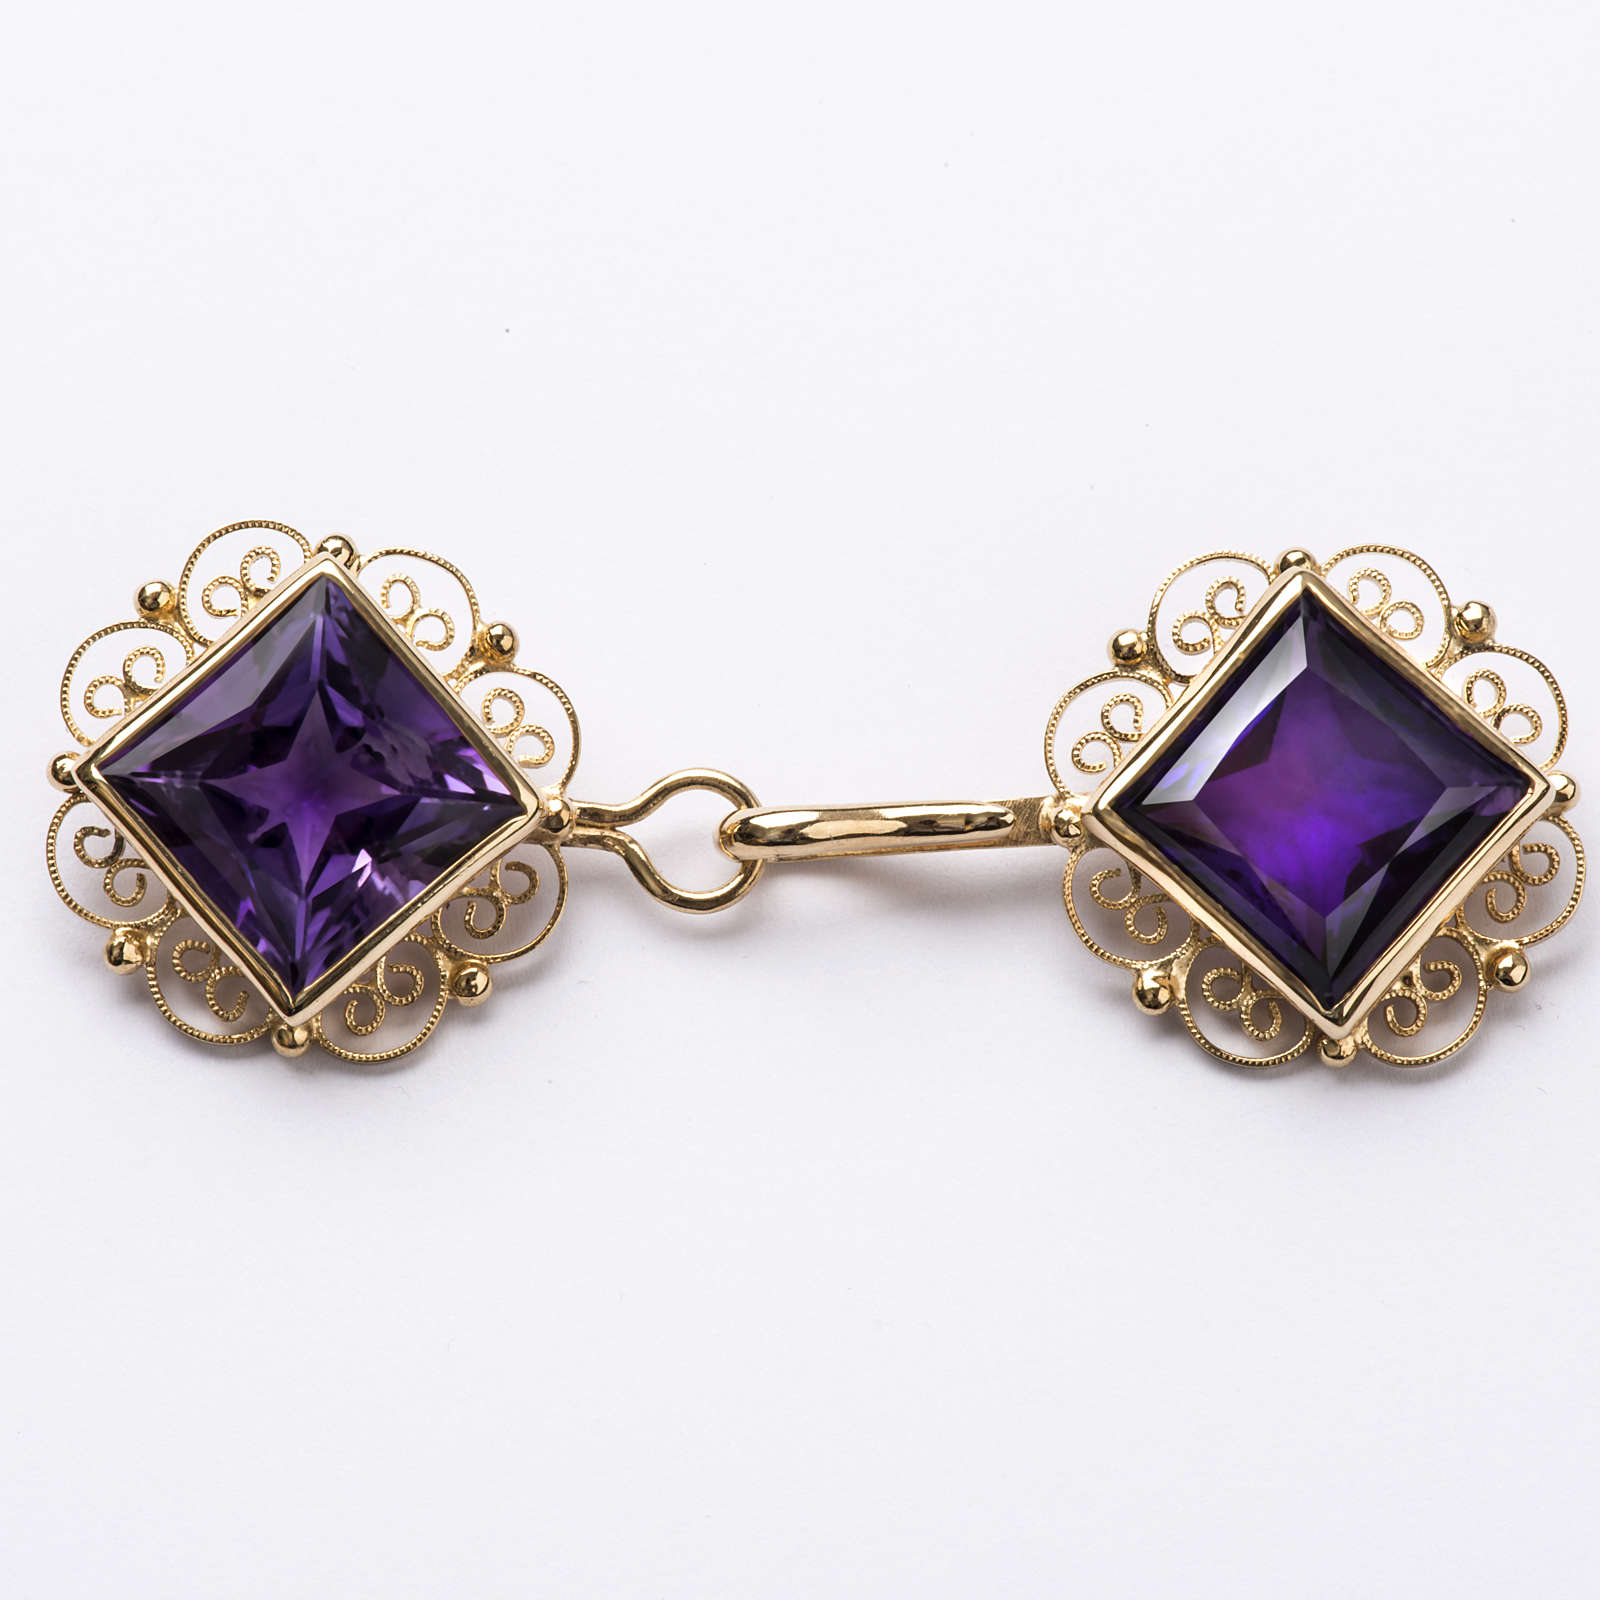 Cope Clasp in golden silver 800 filigree with Amethyst 4